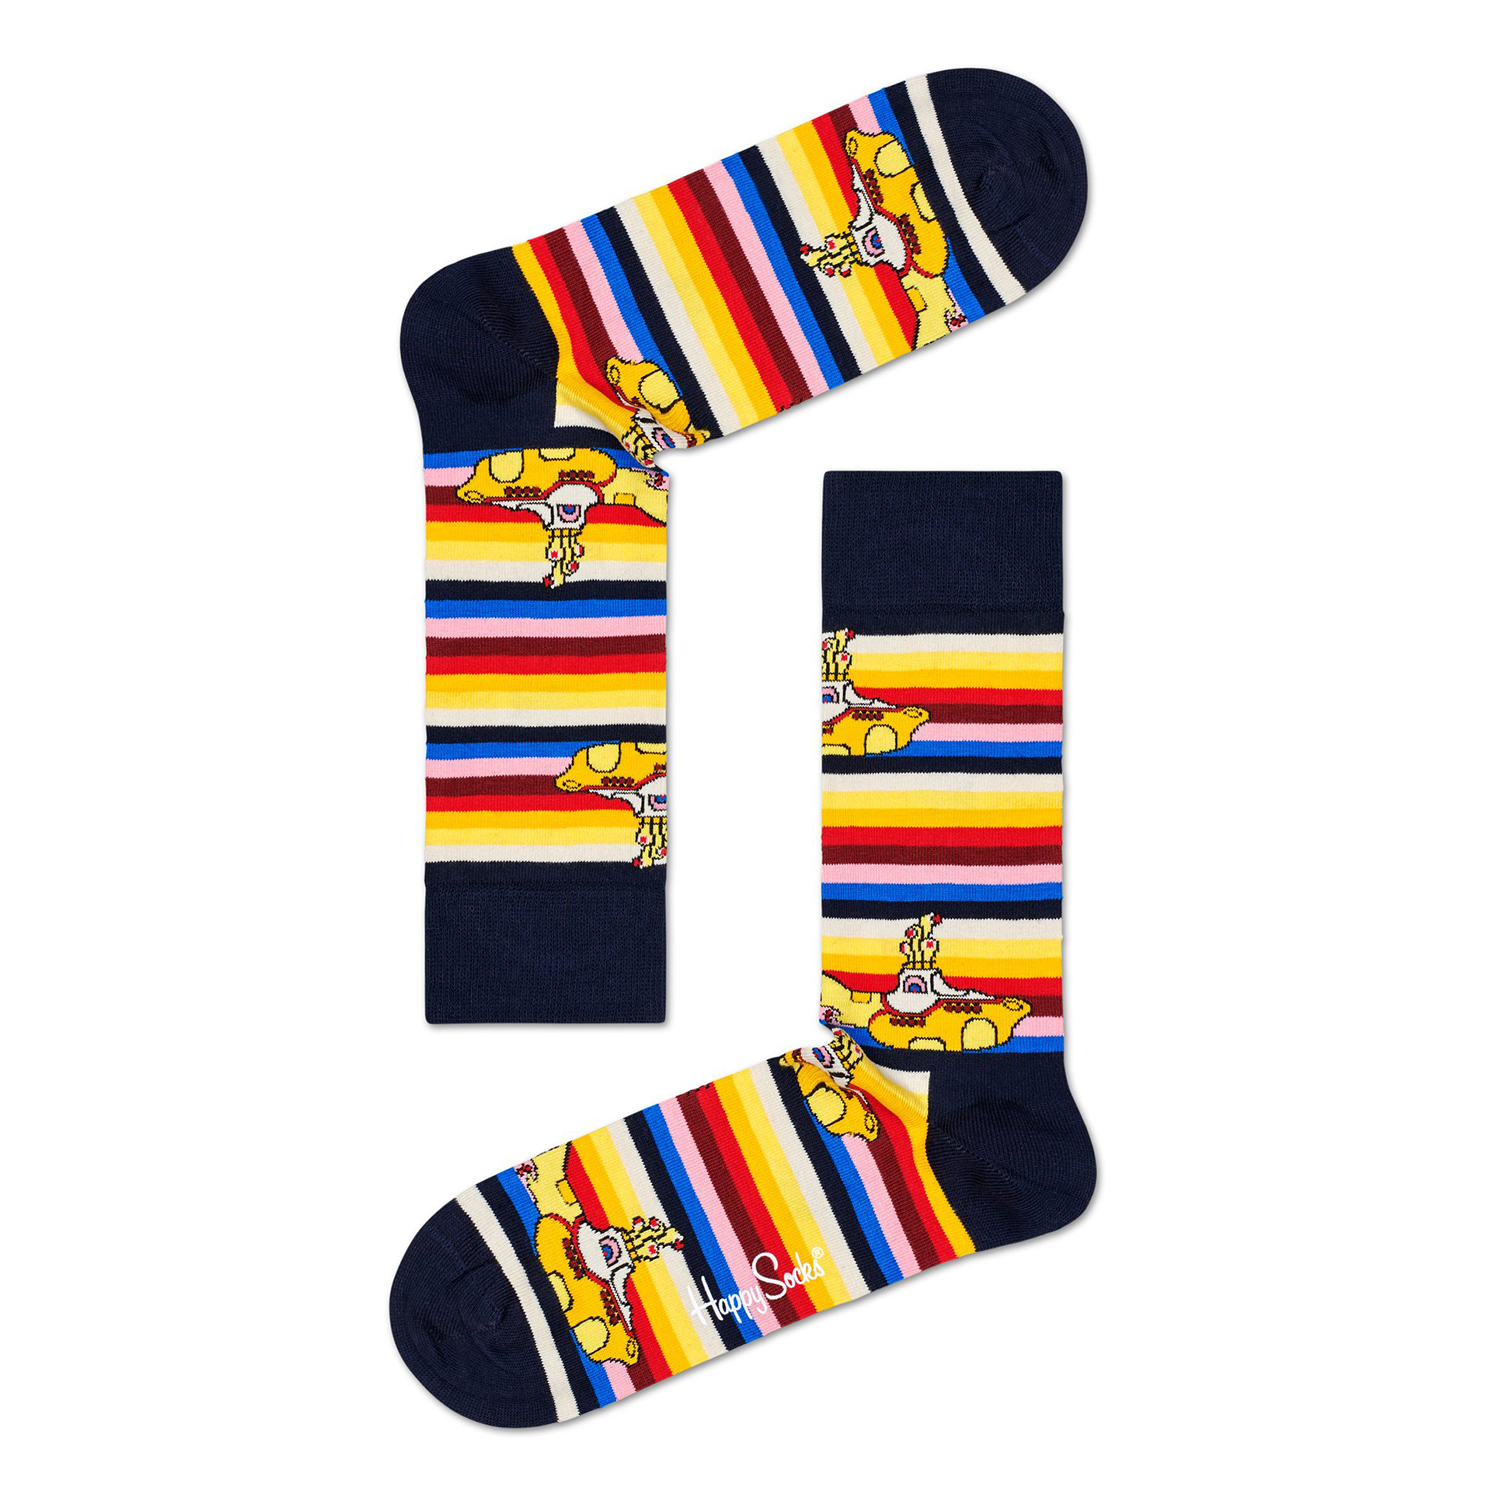 Happy Socks – 6 Pairs of The Beatles Socks in The Collector Box Set